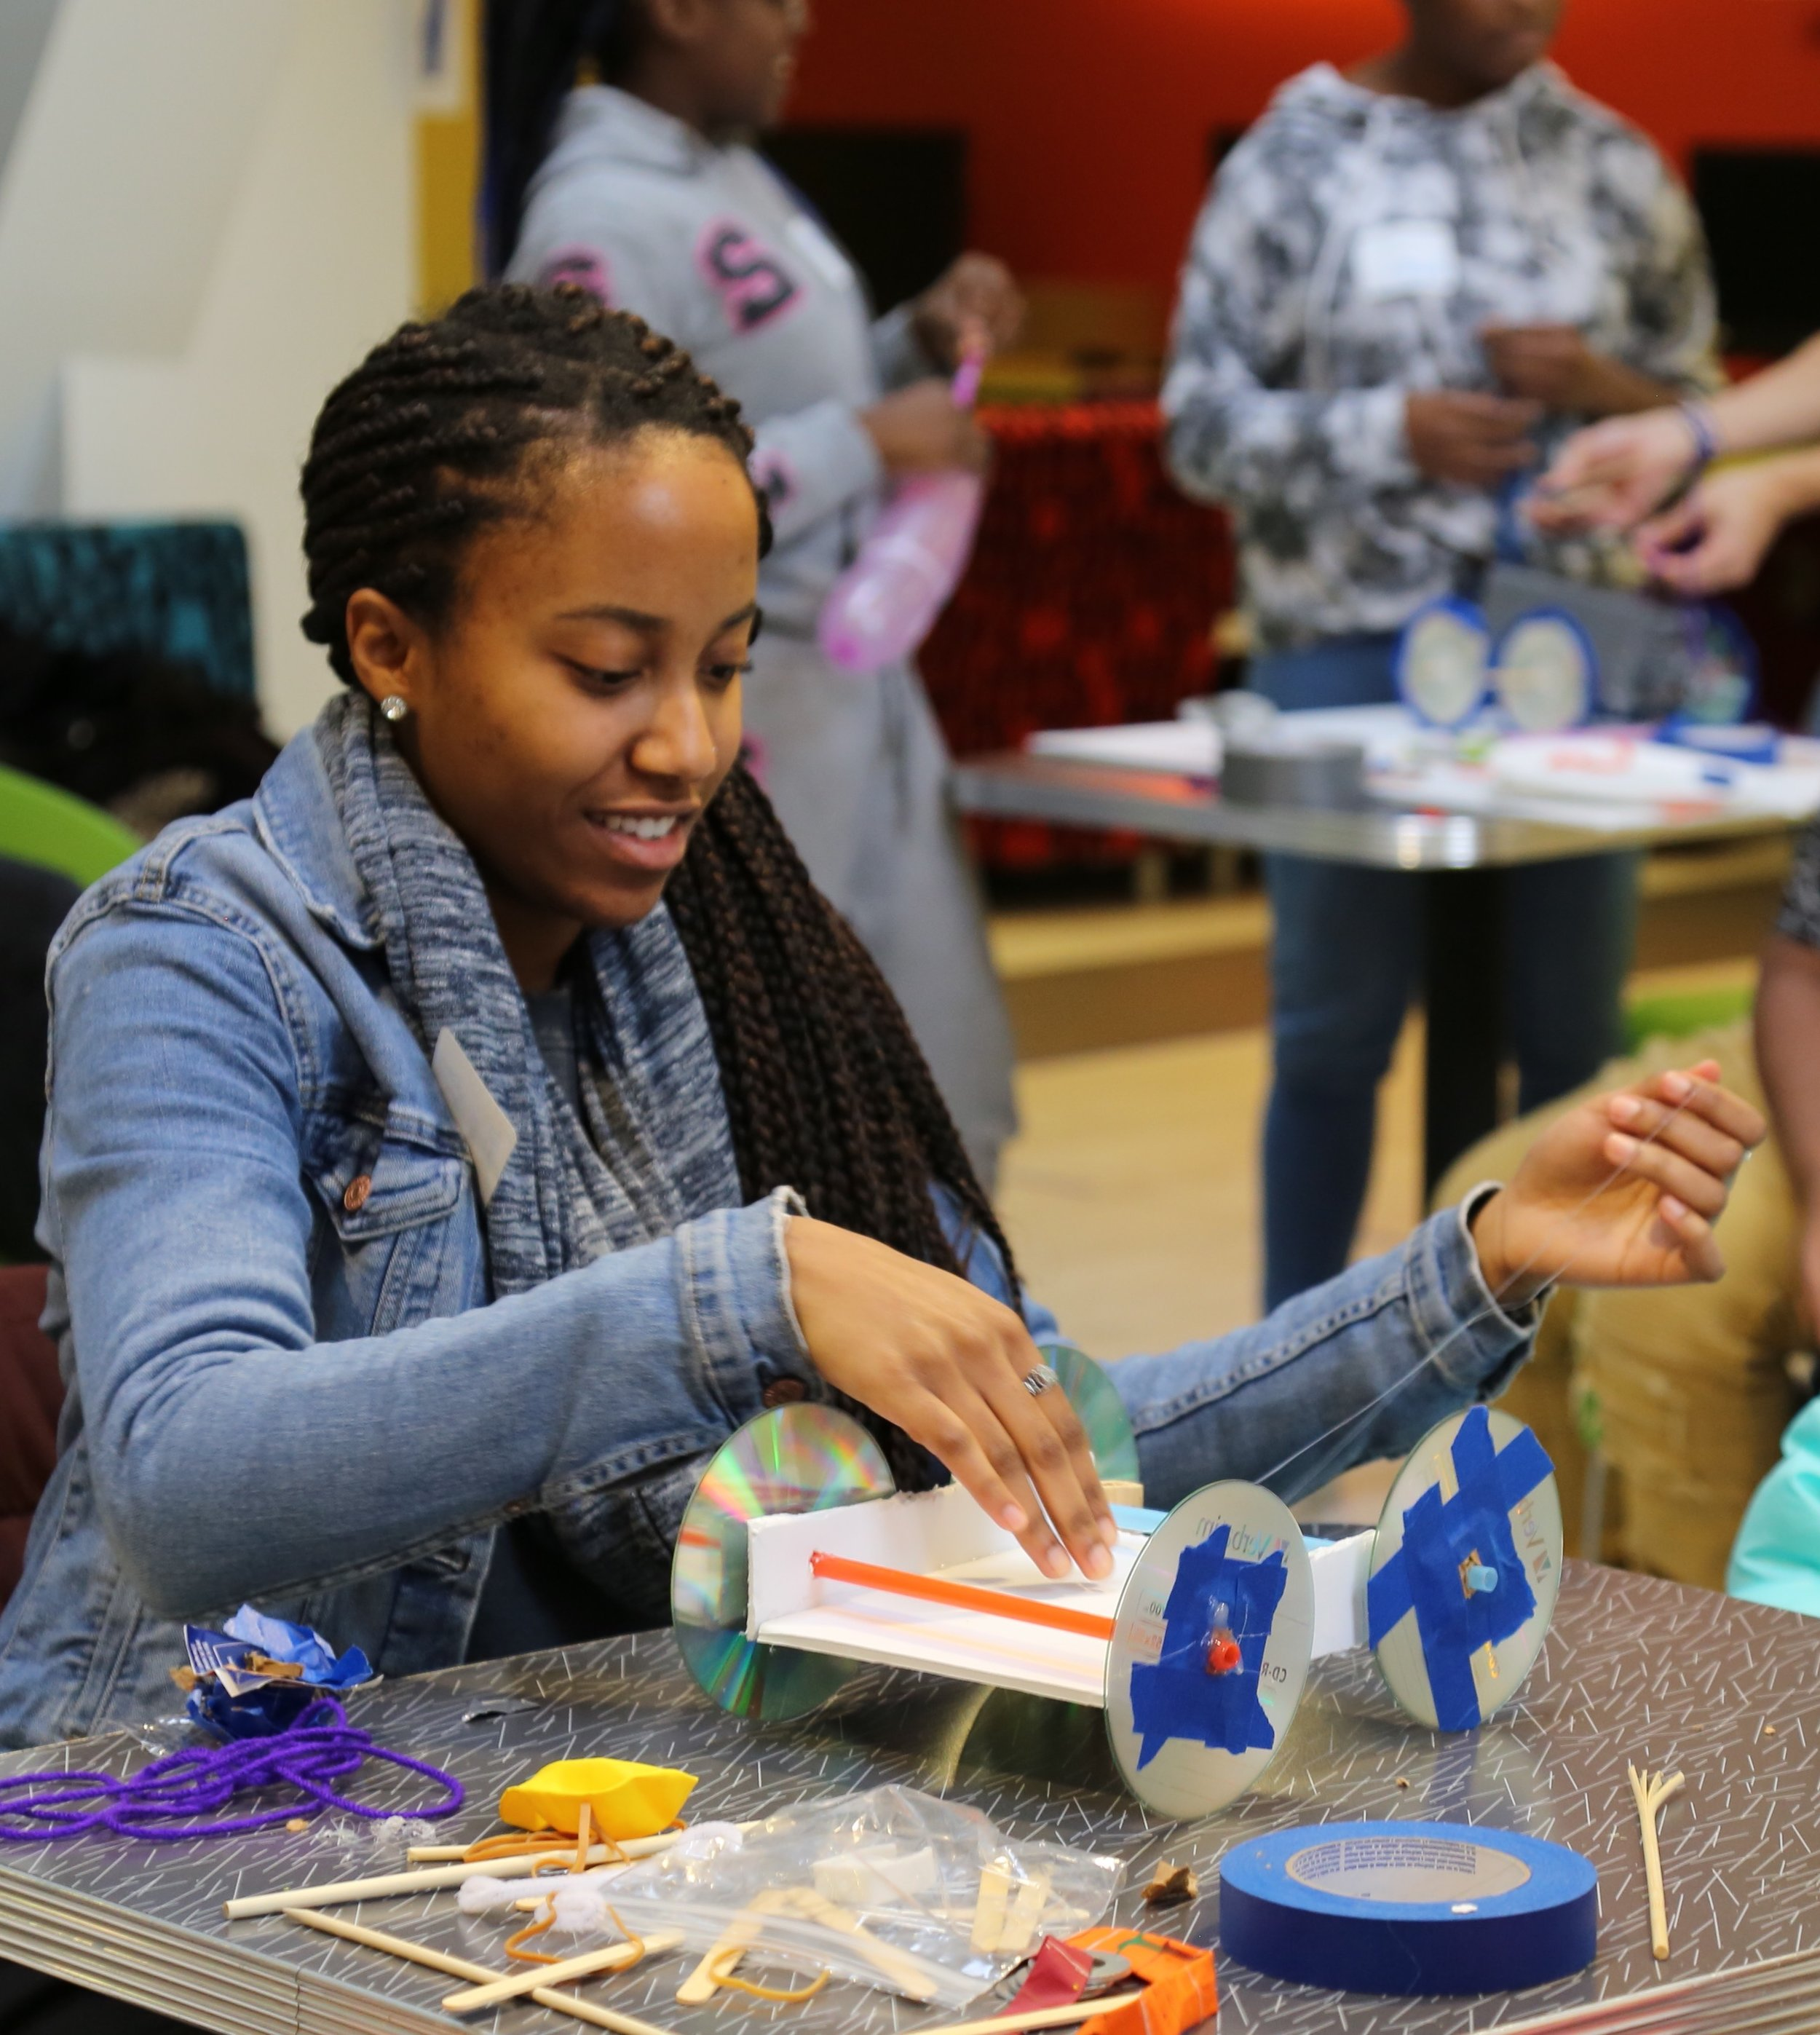 Our Mission - Studio: TESLA mobilizes college students to establish dynamic after-school activities for underserved youth to build STEAM literacies and critical-thinking capacity through hands-on design challenges.